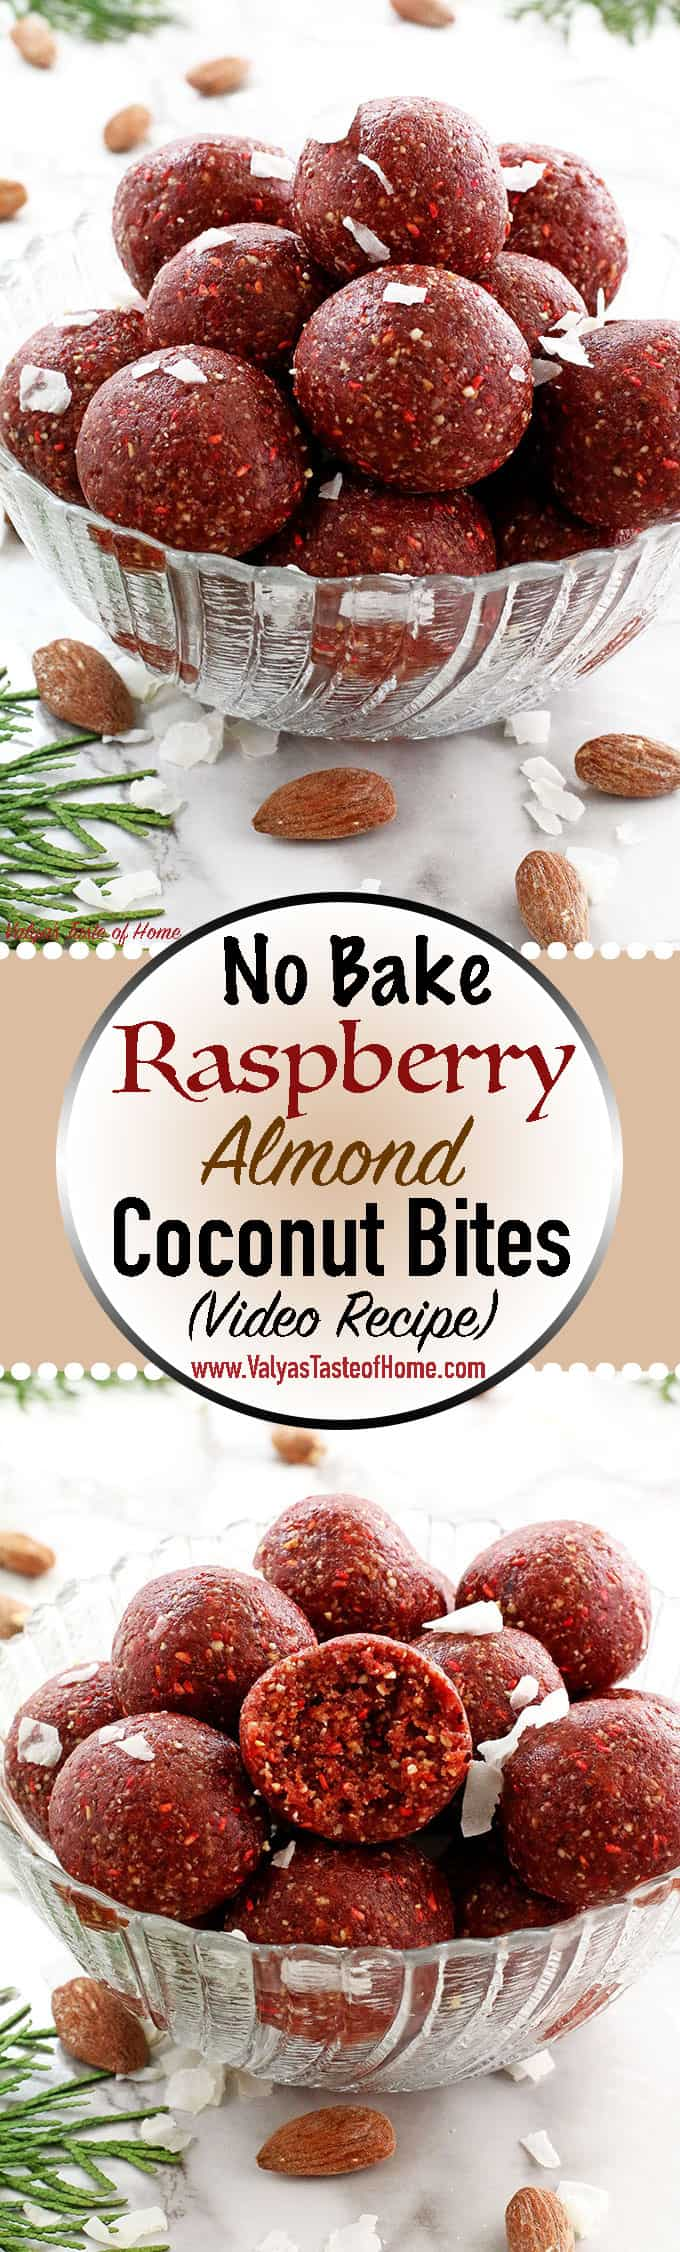 These No Bake Raspberry Almond Coconut Bites will satisfy anyone's sweet tooth! They are chewy, tasty, loaded with nuts and frozen raspberries that just blends so well together. They are a quicker and healthier granola bar. I cannot express how much they've helped sustain me during those time. I love these! I really recommend you give it a try if you're frequently on the go! You will fall in love with these bites from the first one you pop in your mouth.